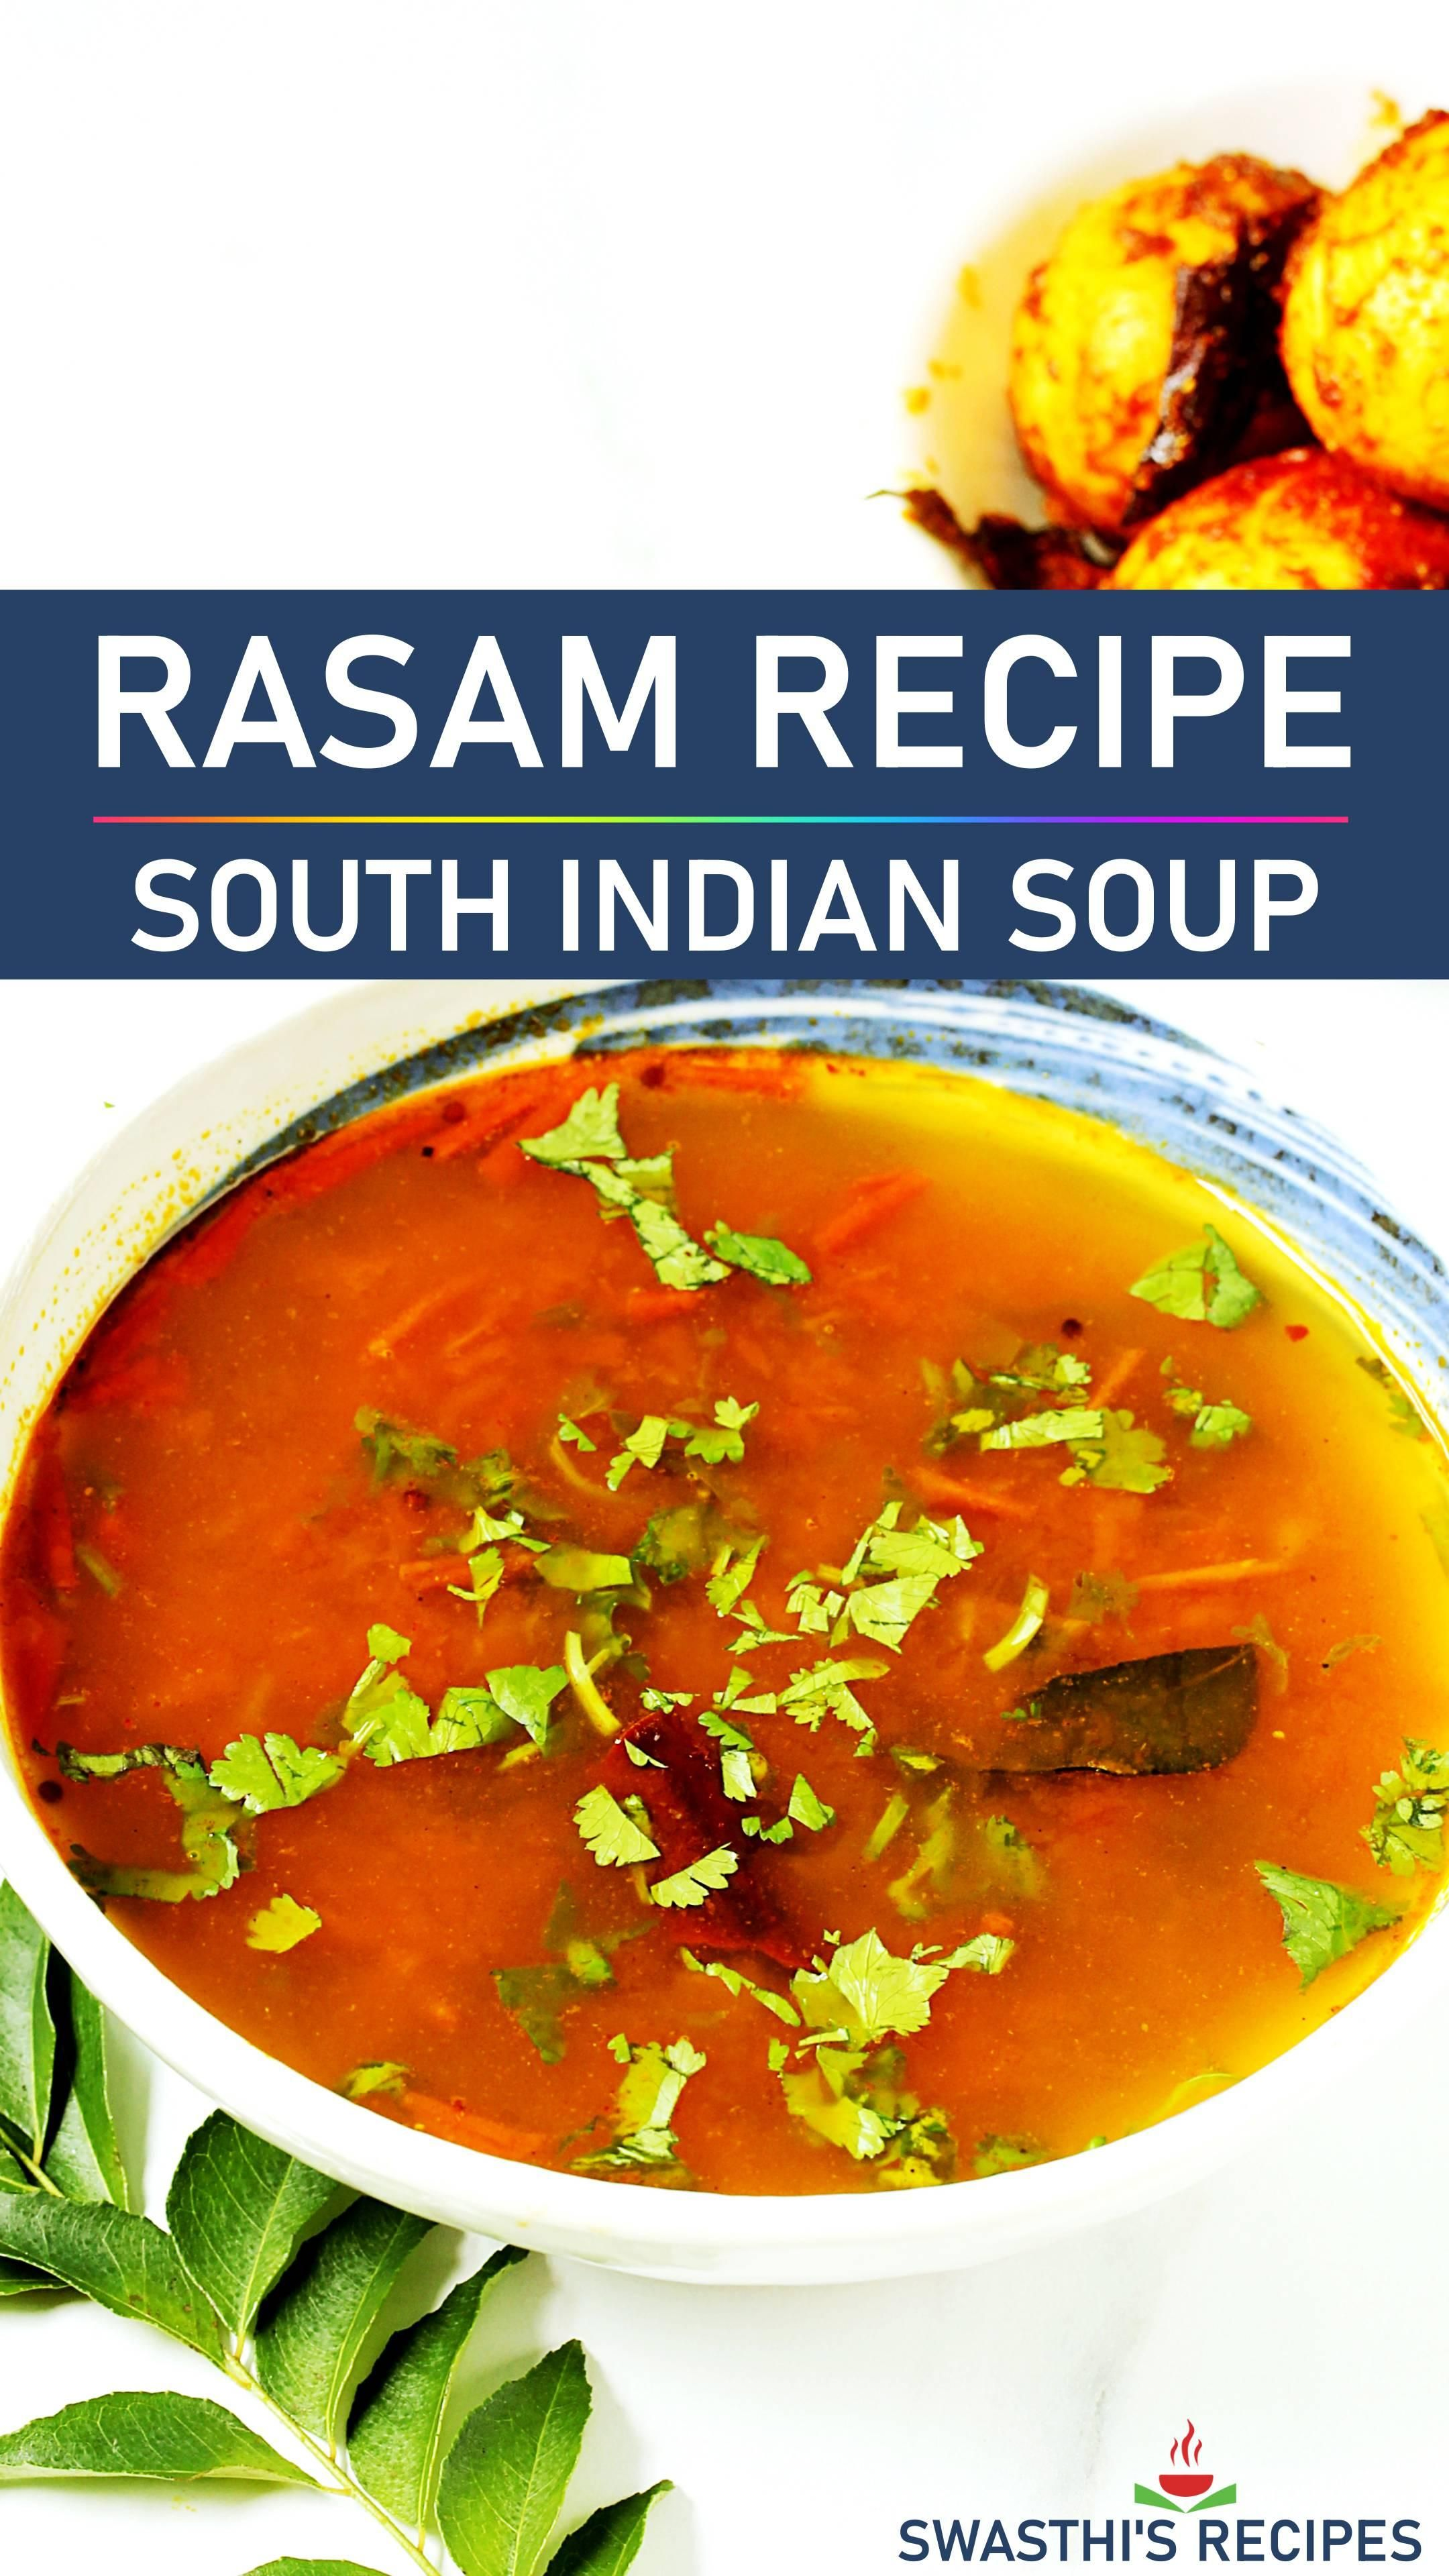 Rasam is a traditional South Indian soup made with tomatoes, tamarind, spices and herbs. Make delicious sweet, sour & spicy rasam at home with this easy recipe. #indian #rasam #rasamrecipe #howtomakerasam